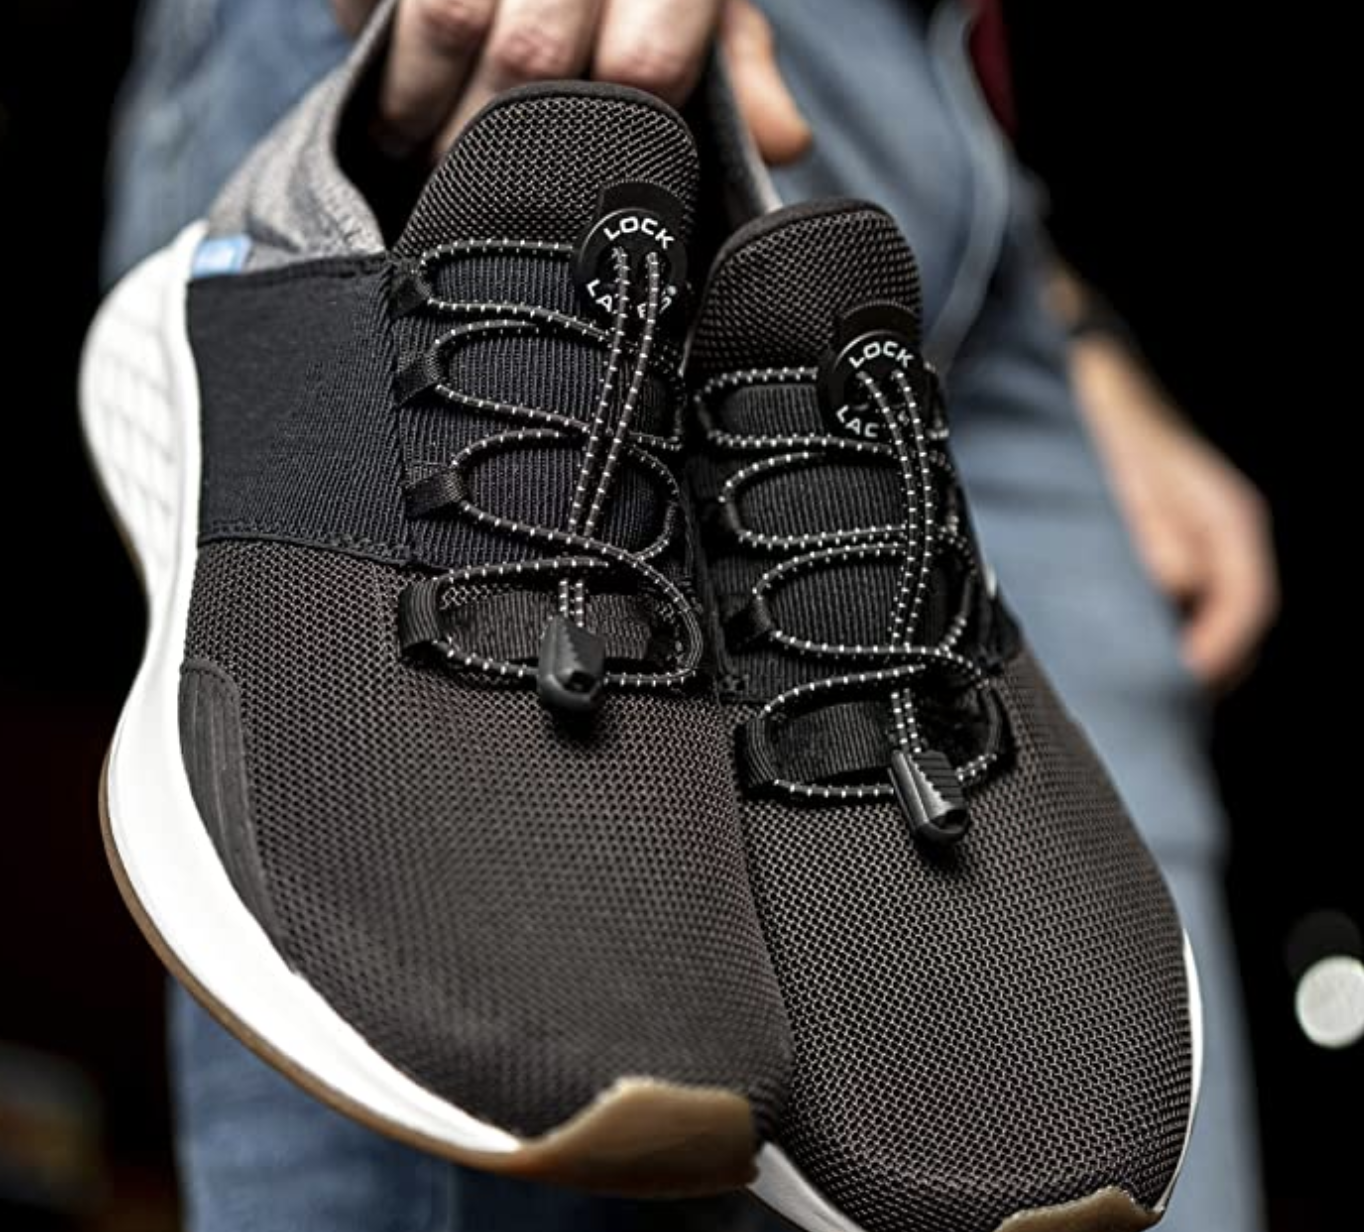 """A pair of sneakers with black bungee-like """"lock laces"""" in the shoe lace straps"""